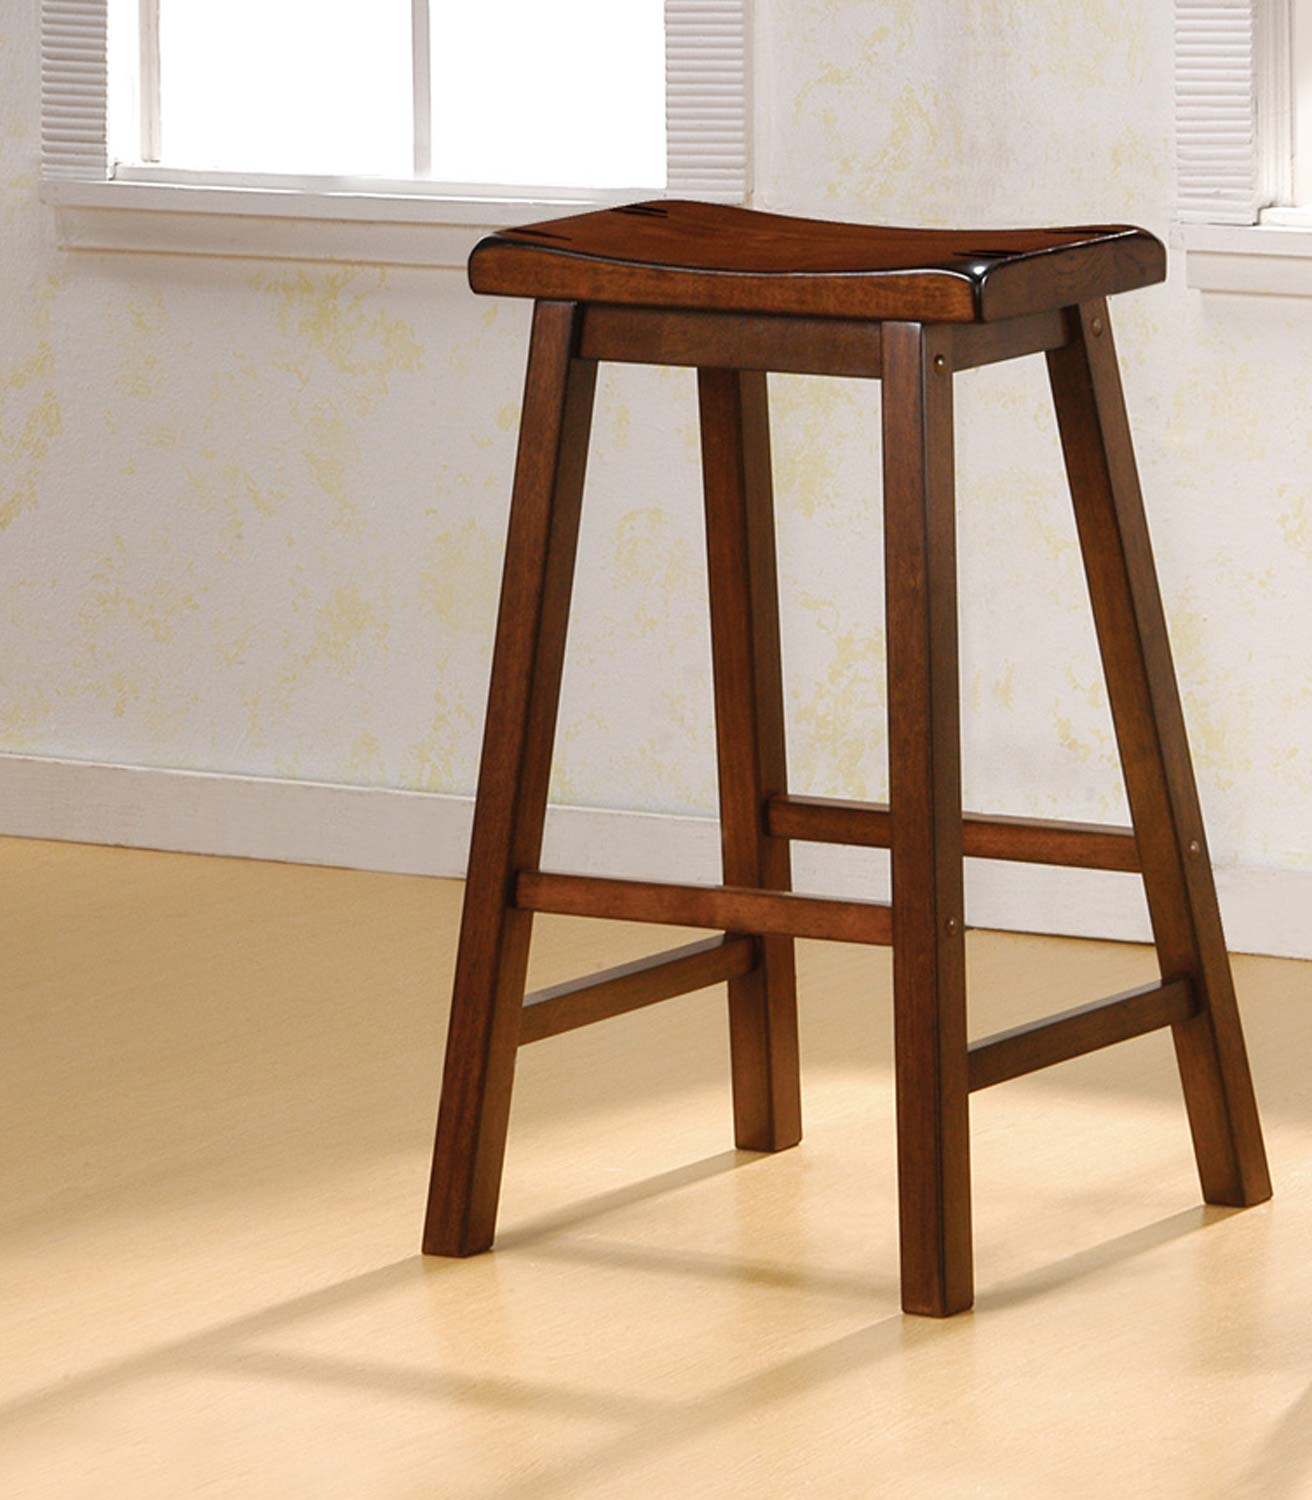 Coaster 180079 Bar Stool - Dark Walnut